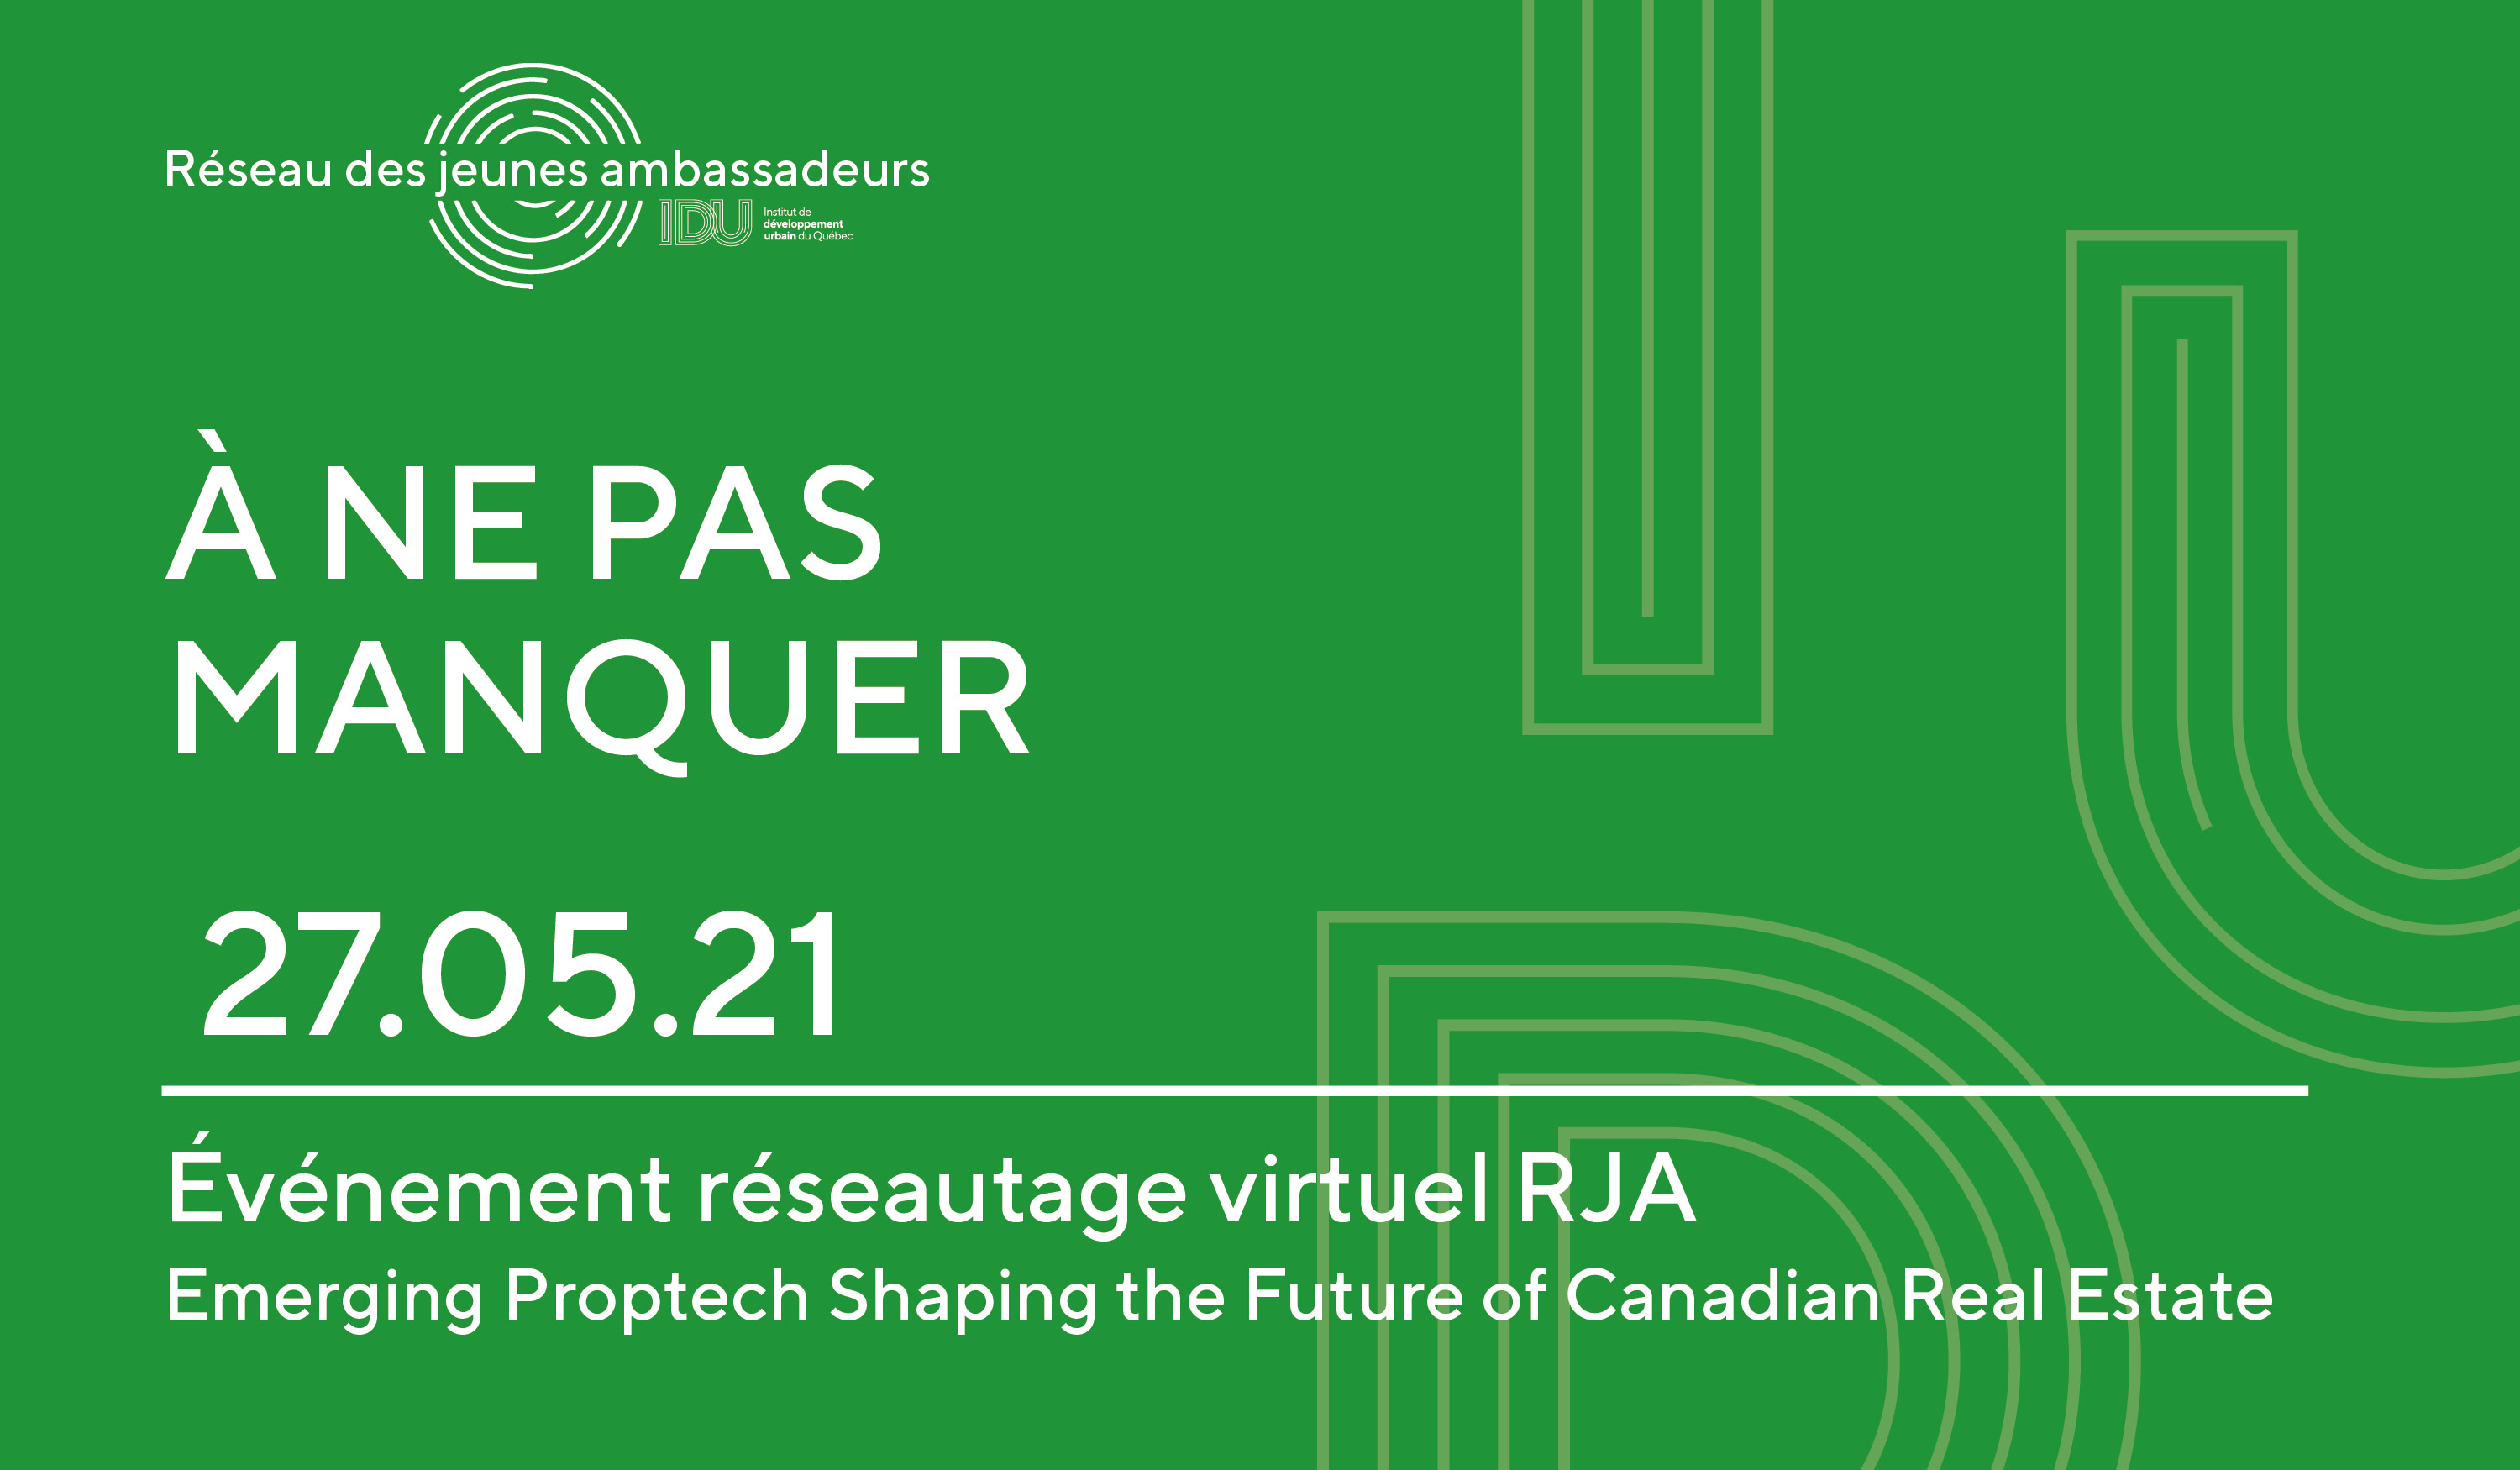 RJA - Emerging Proptech Shaping the Future of Canadian Real Estate